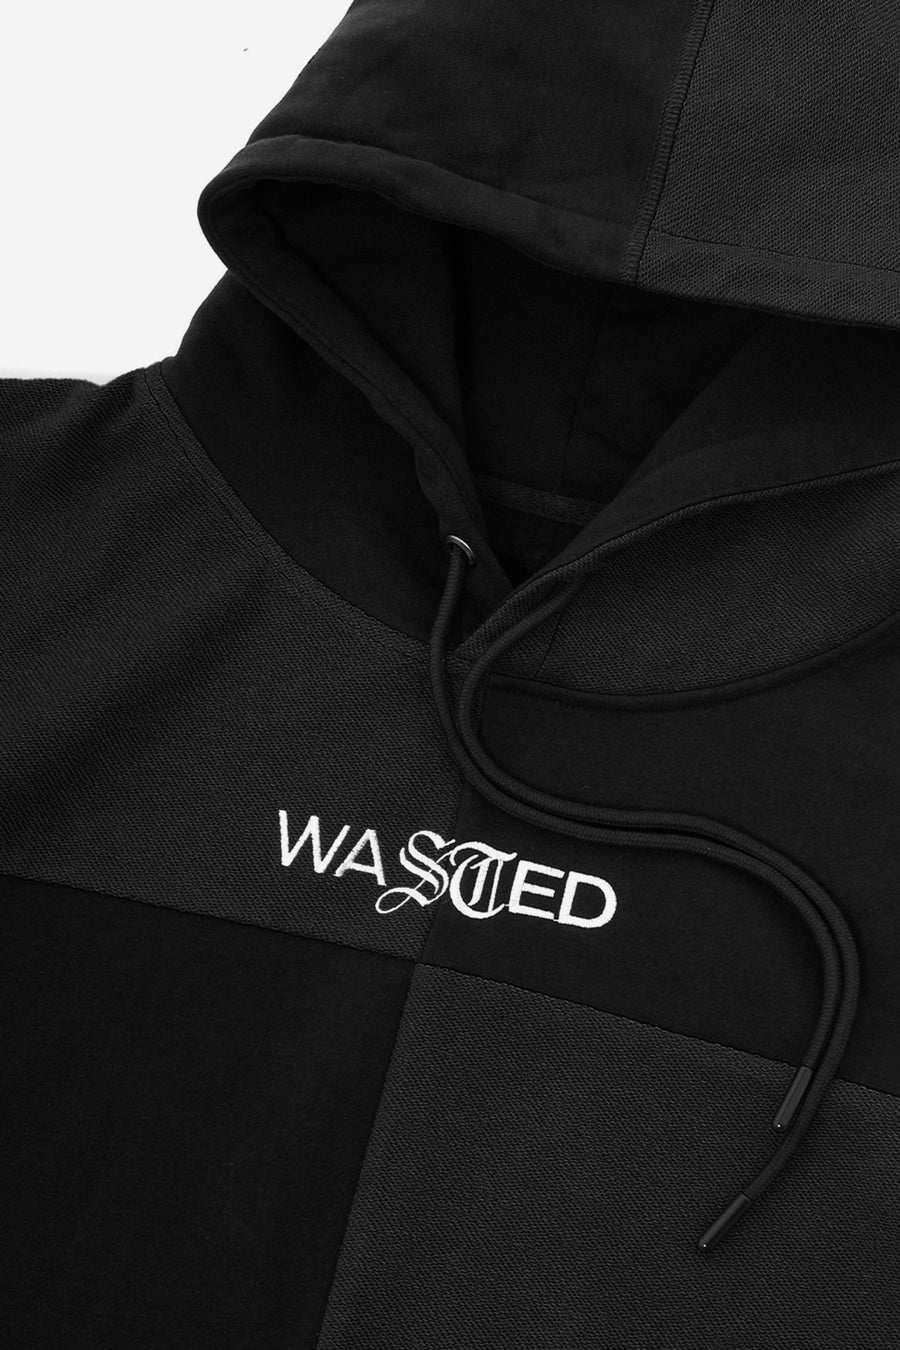 Hoodie Patchwork Noir/Anthracite - WASTED PARIS